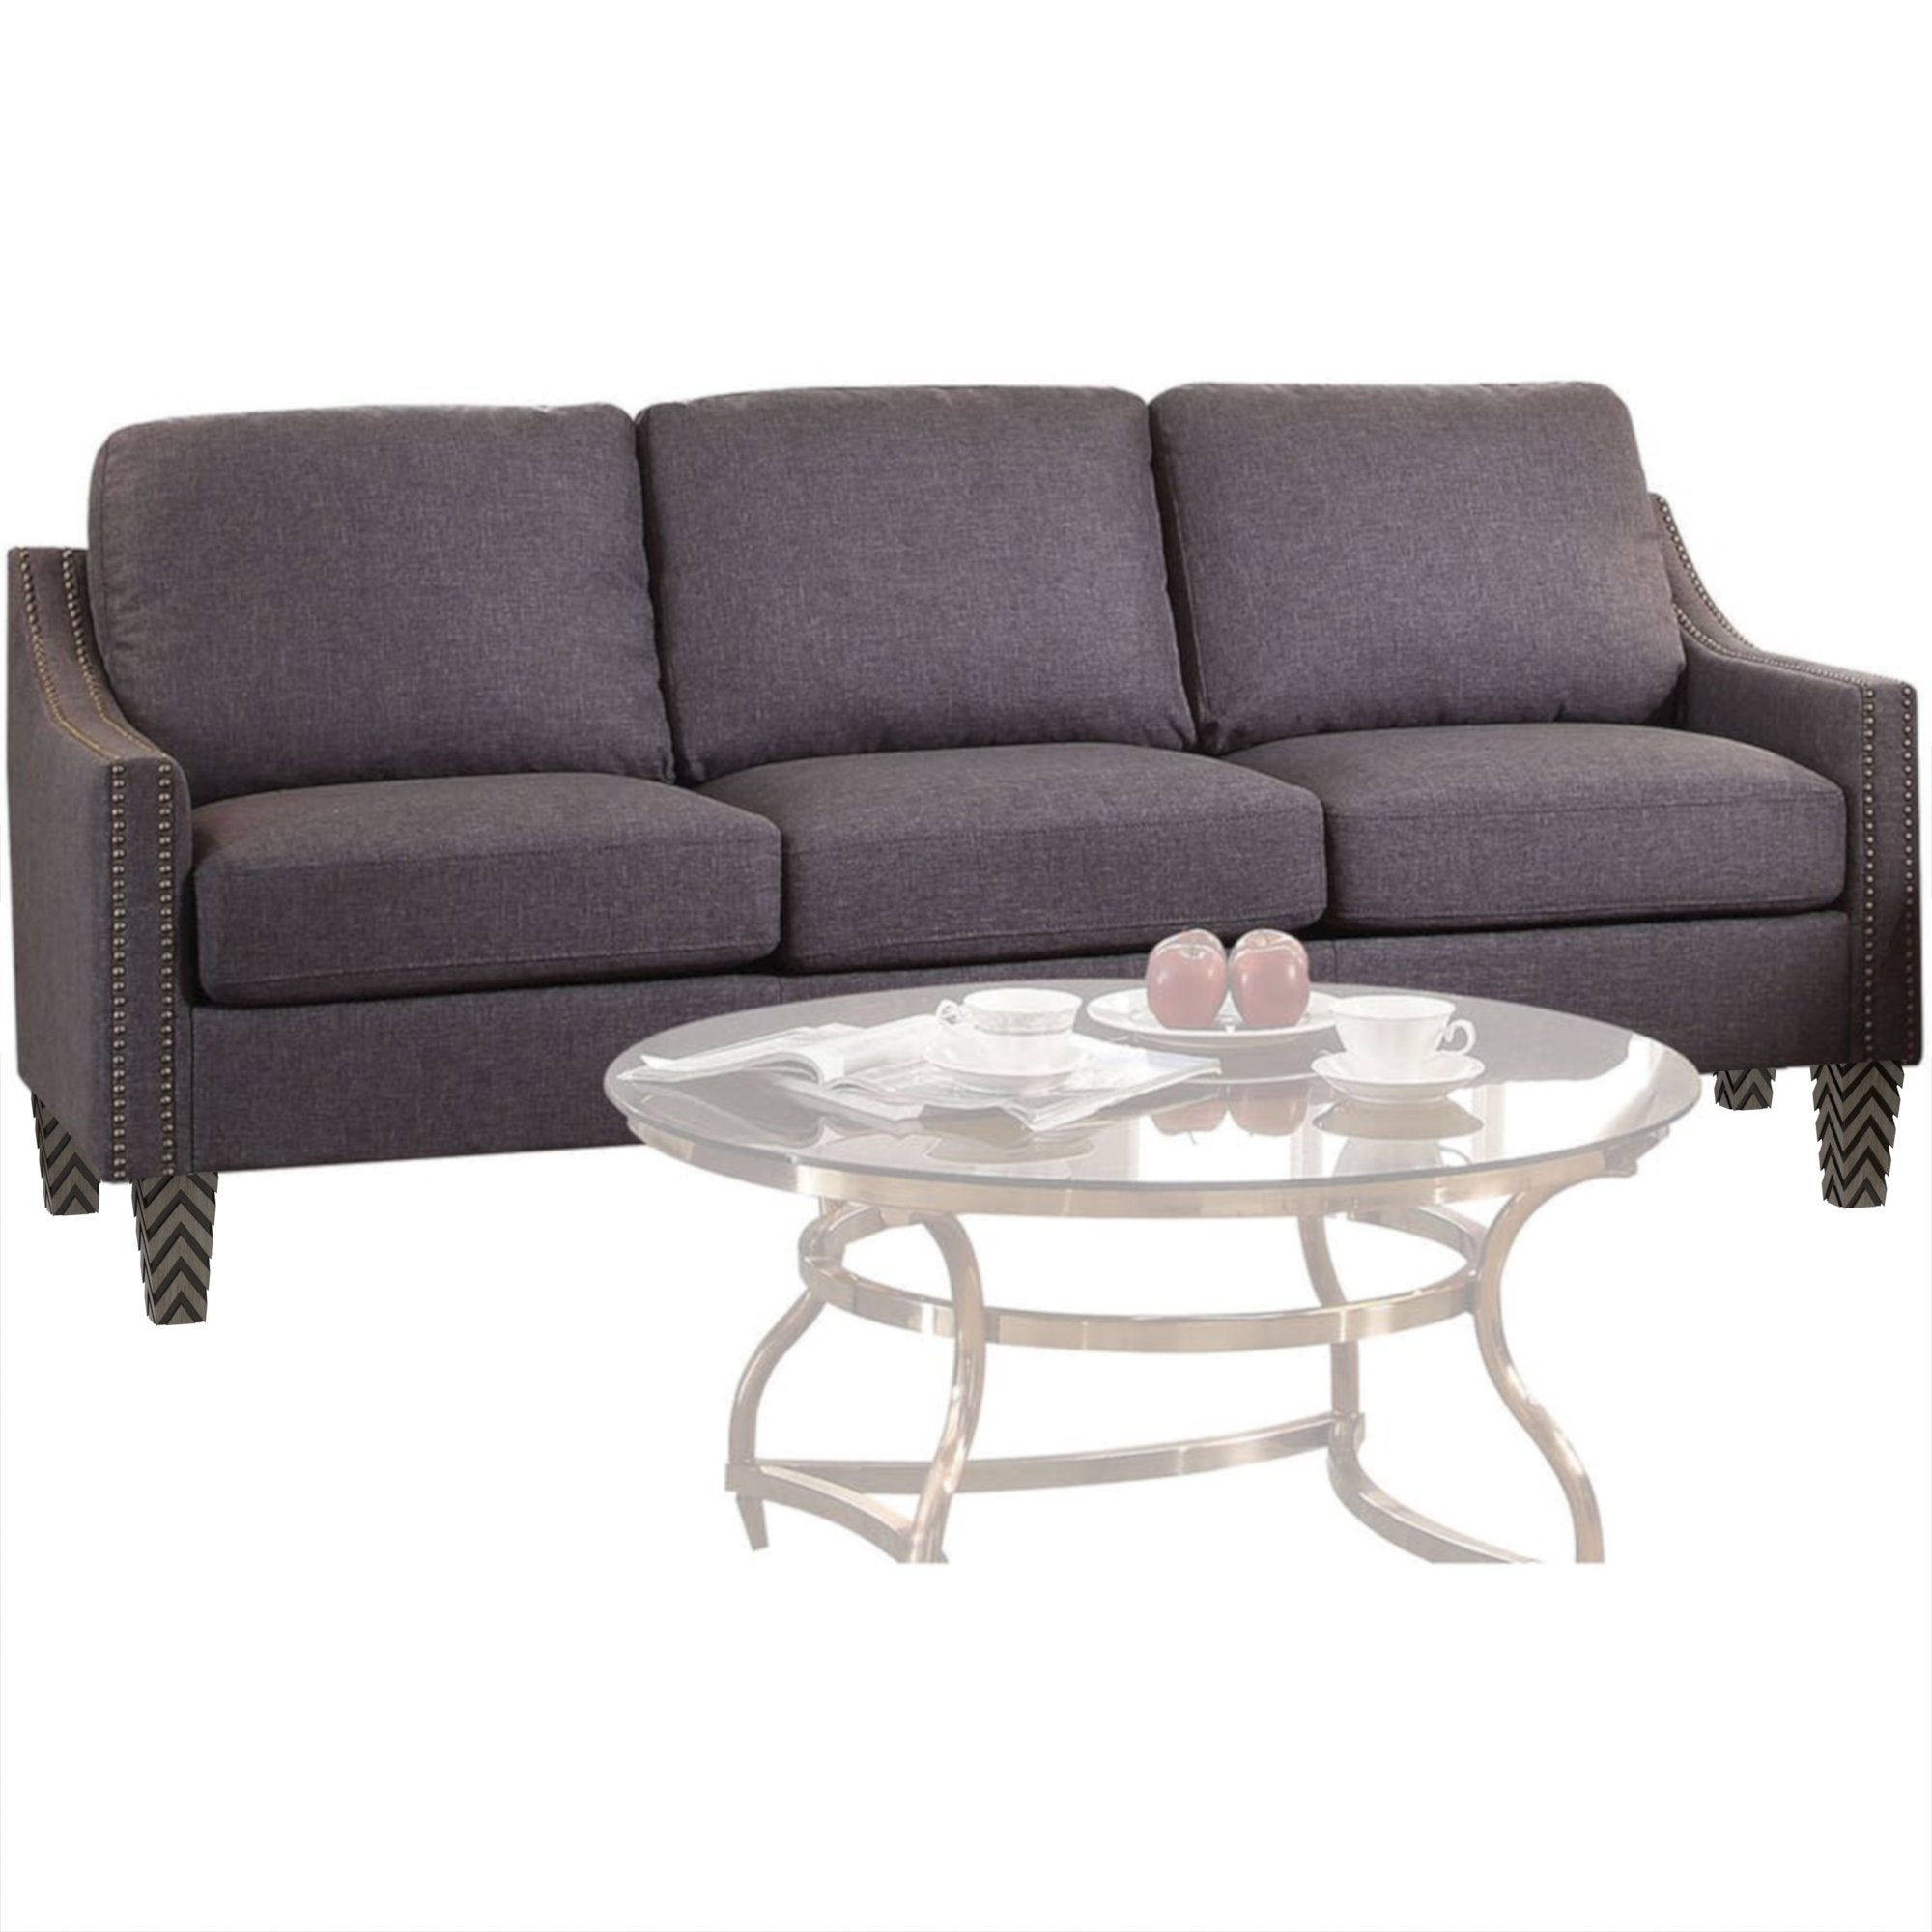 "Gray Zaar Sofa with Nailheads (68"")"